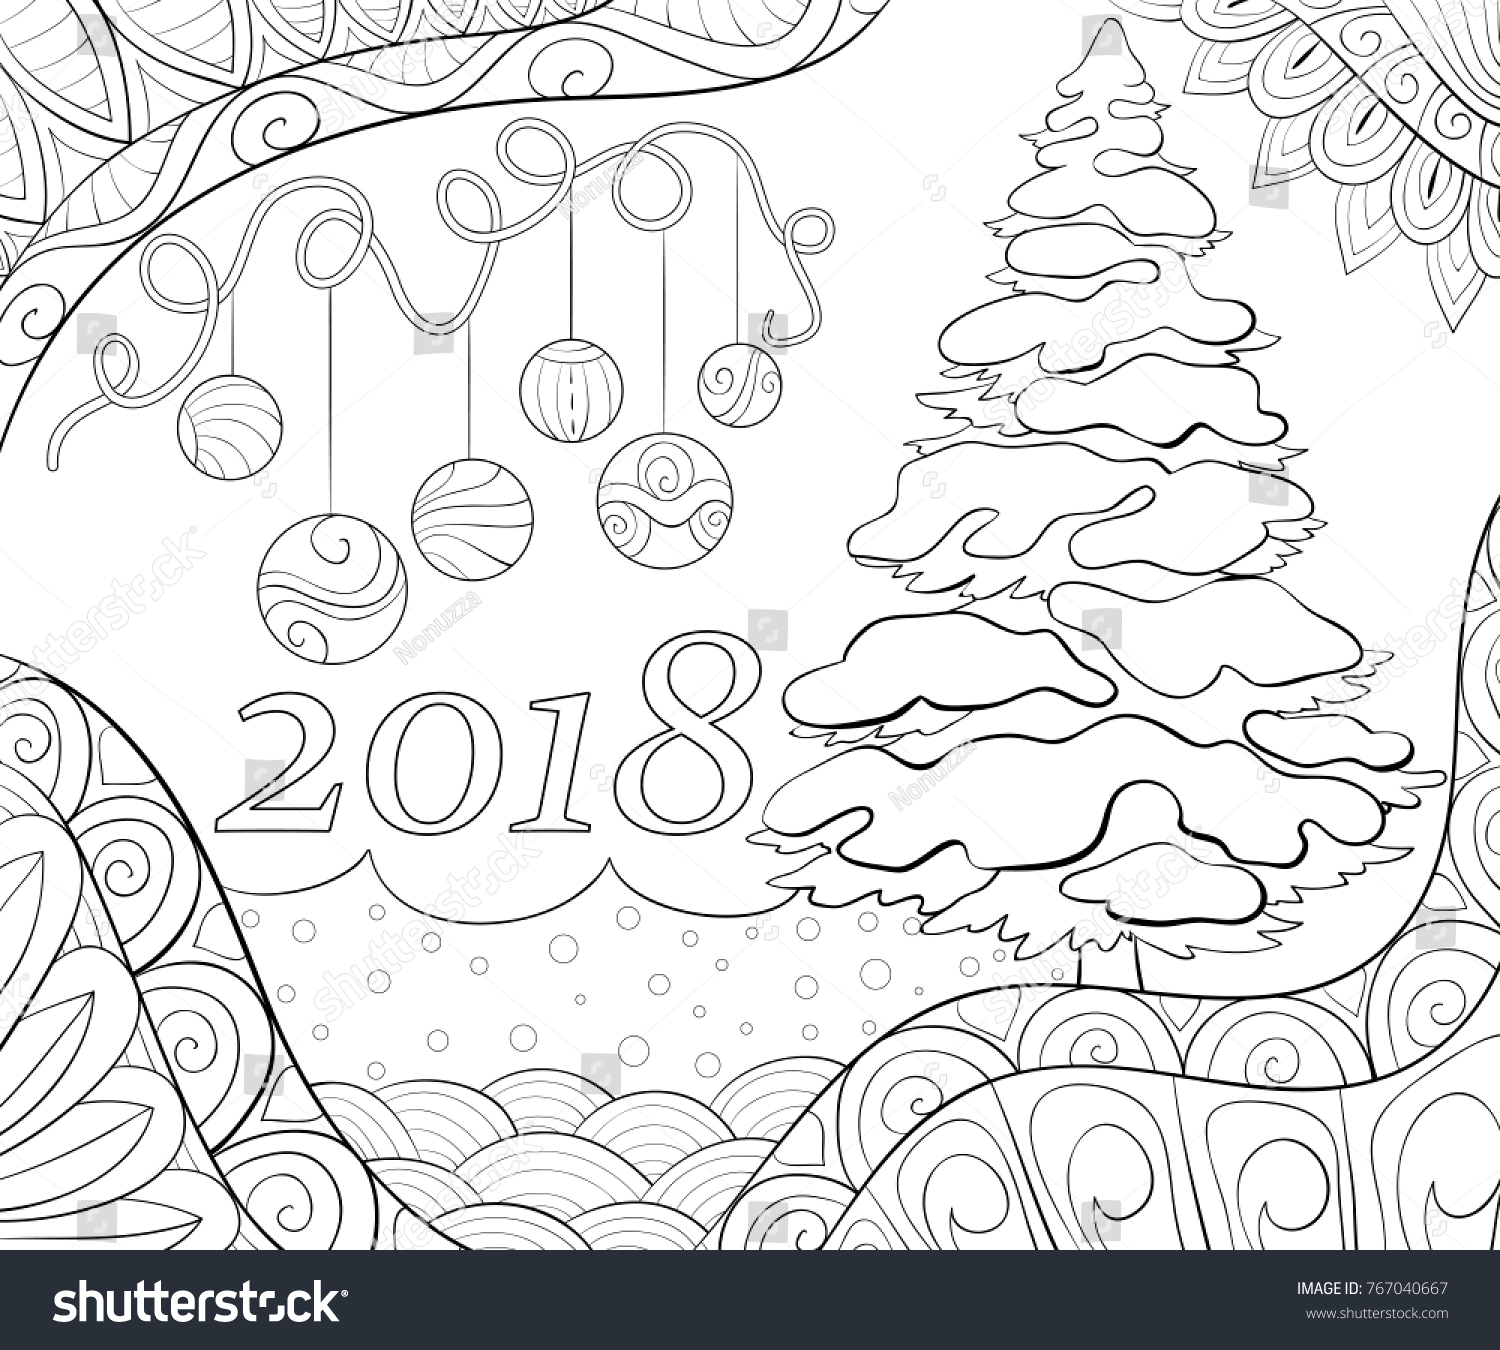 Adult Coloring Page Christmas Theme Illustration Stock Vector